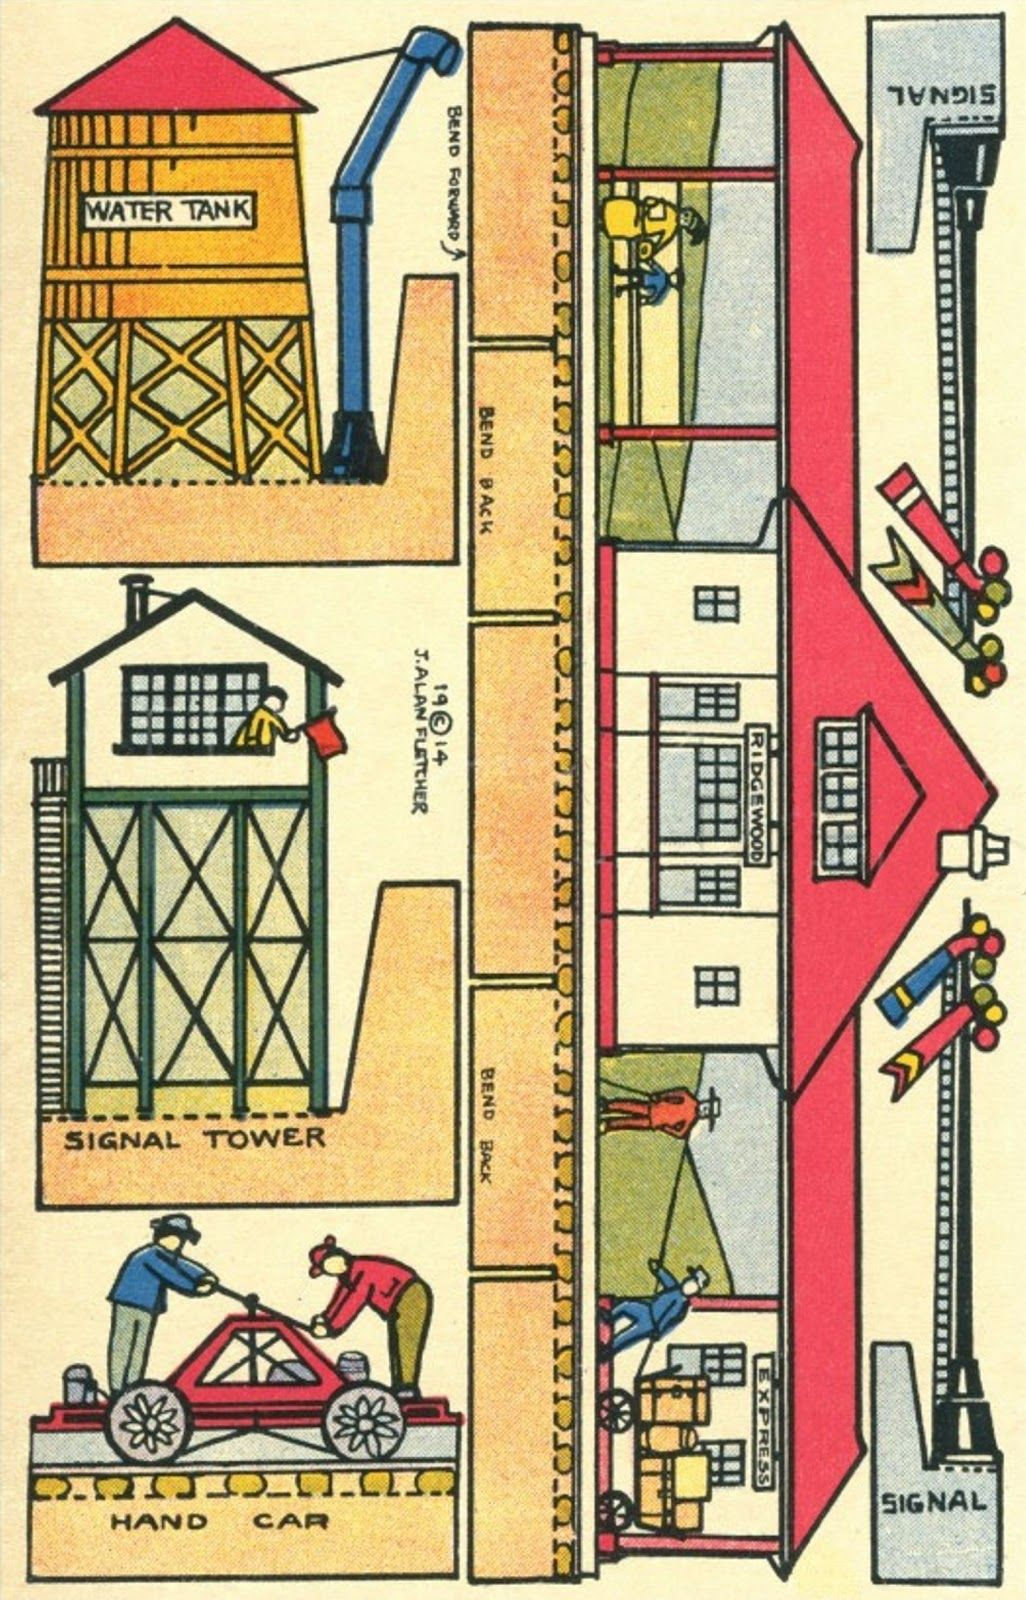 Railway Cardmodels Vintage Papercraft Train Station And